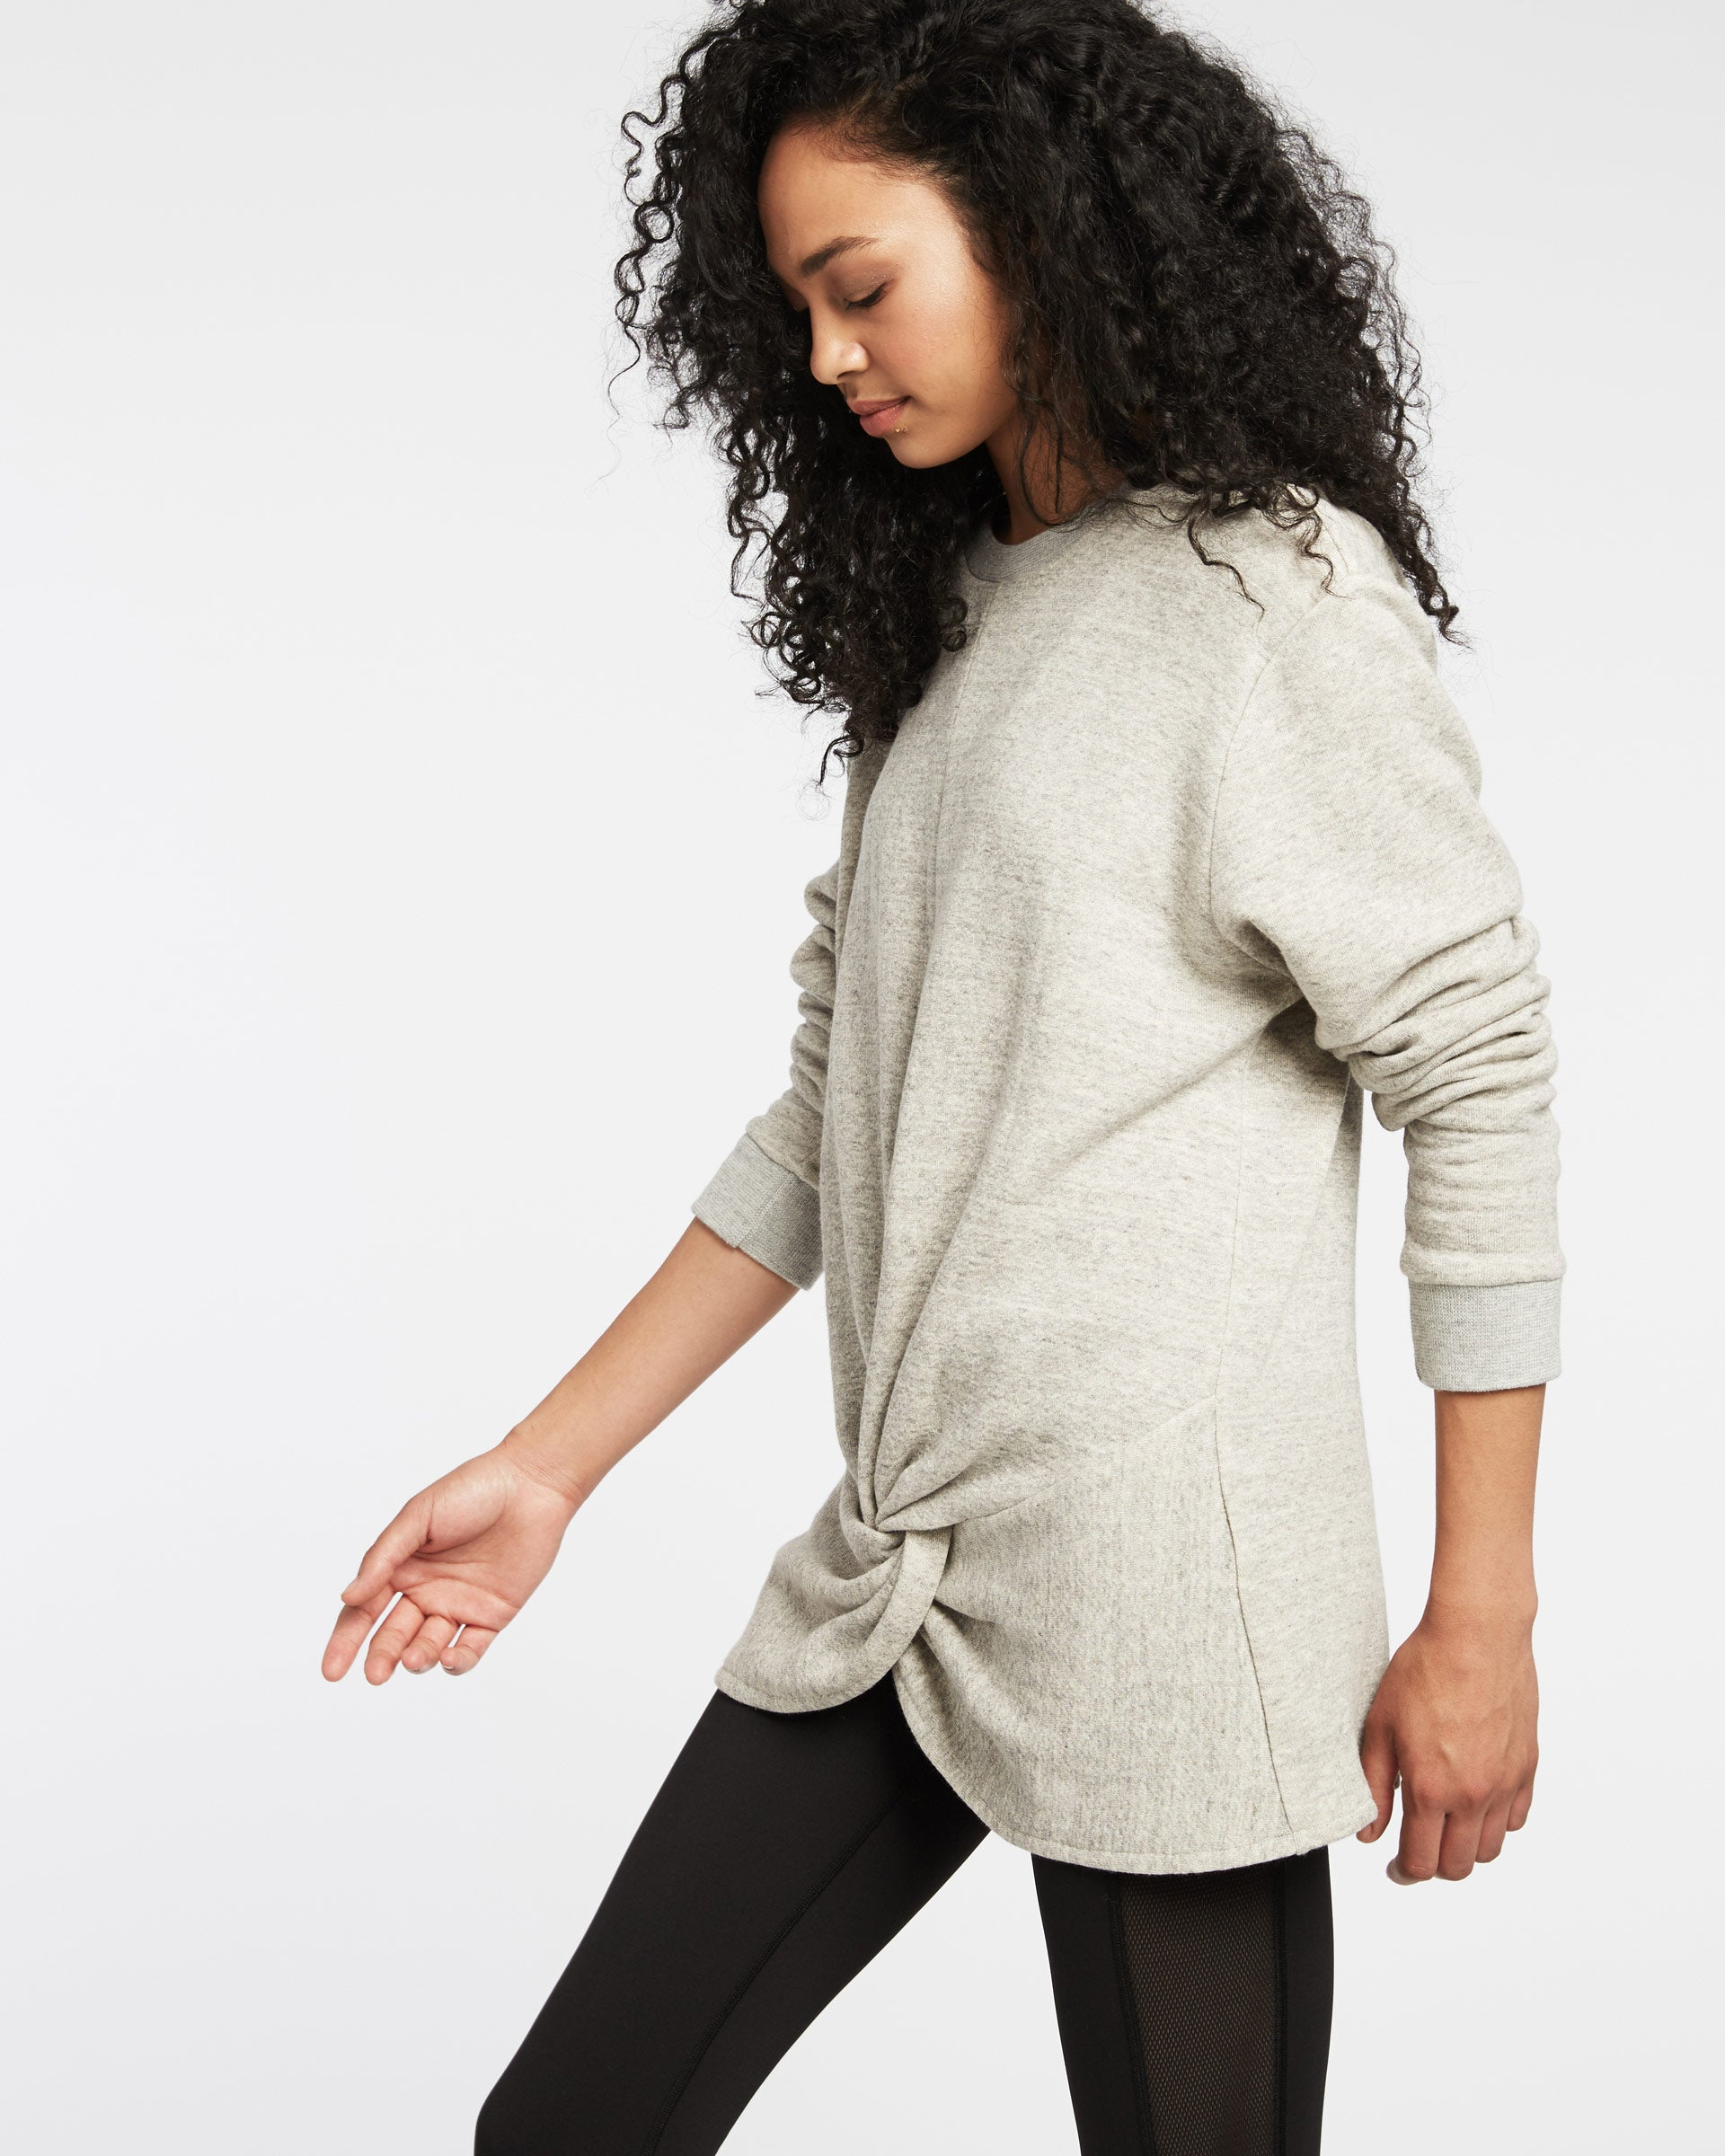 Farfalla Sweatshirt - Heather Grey